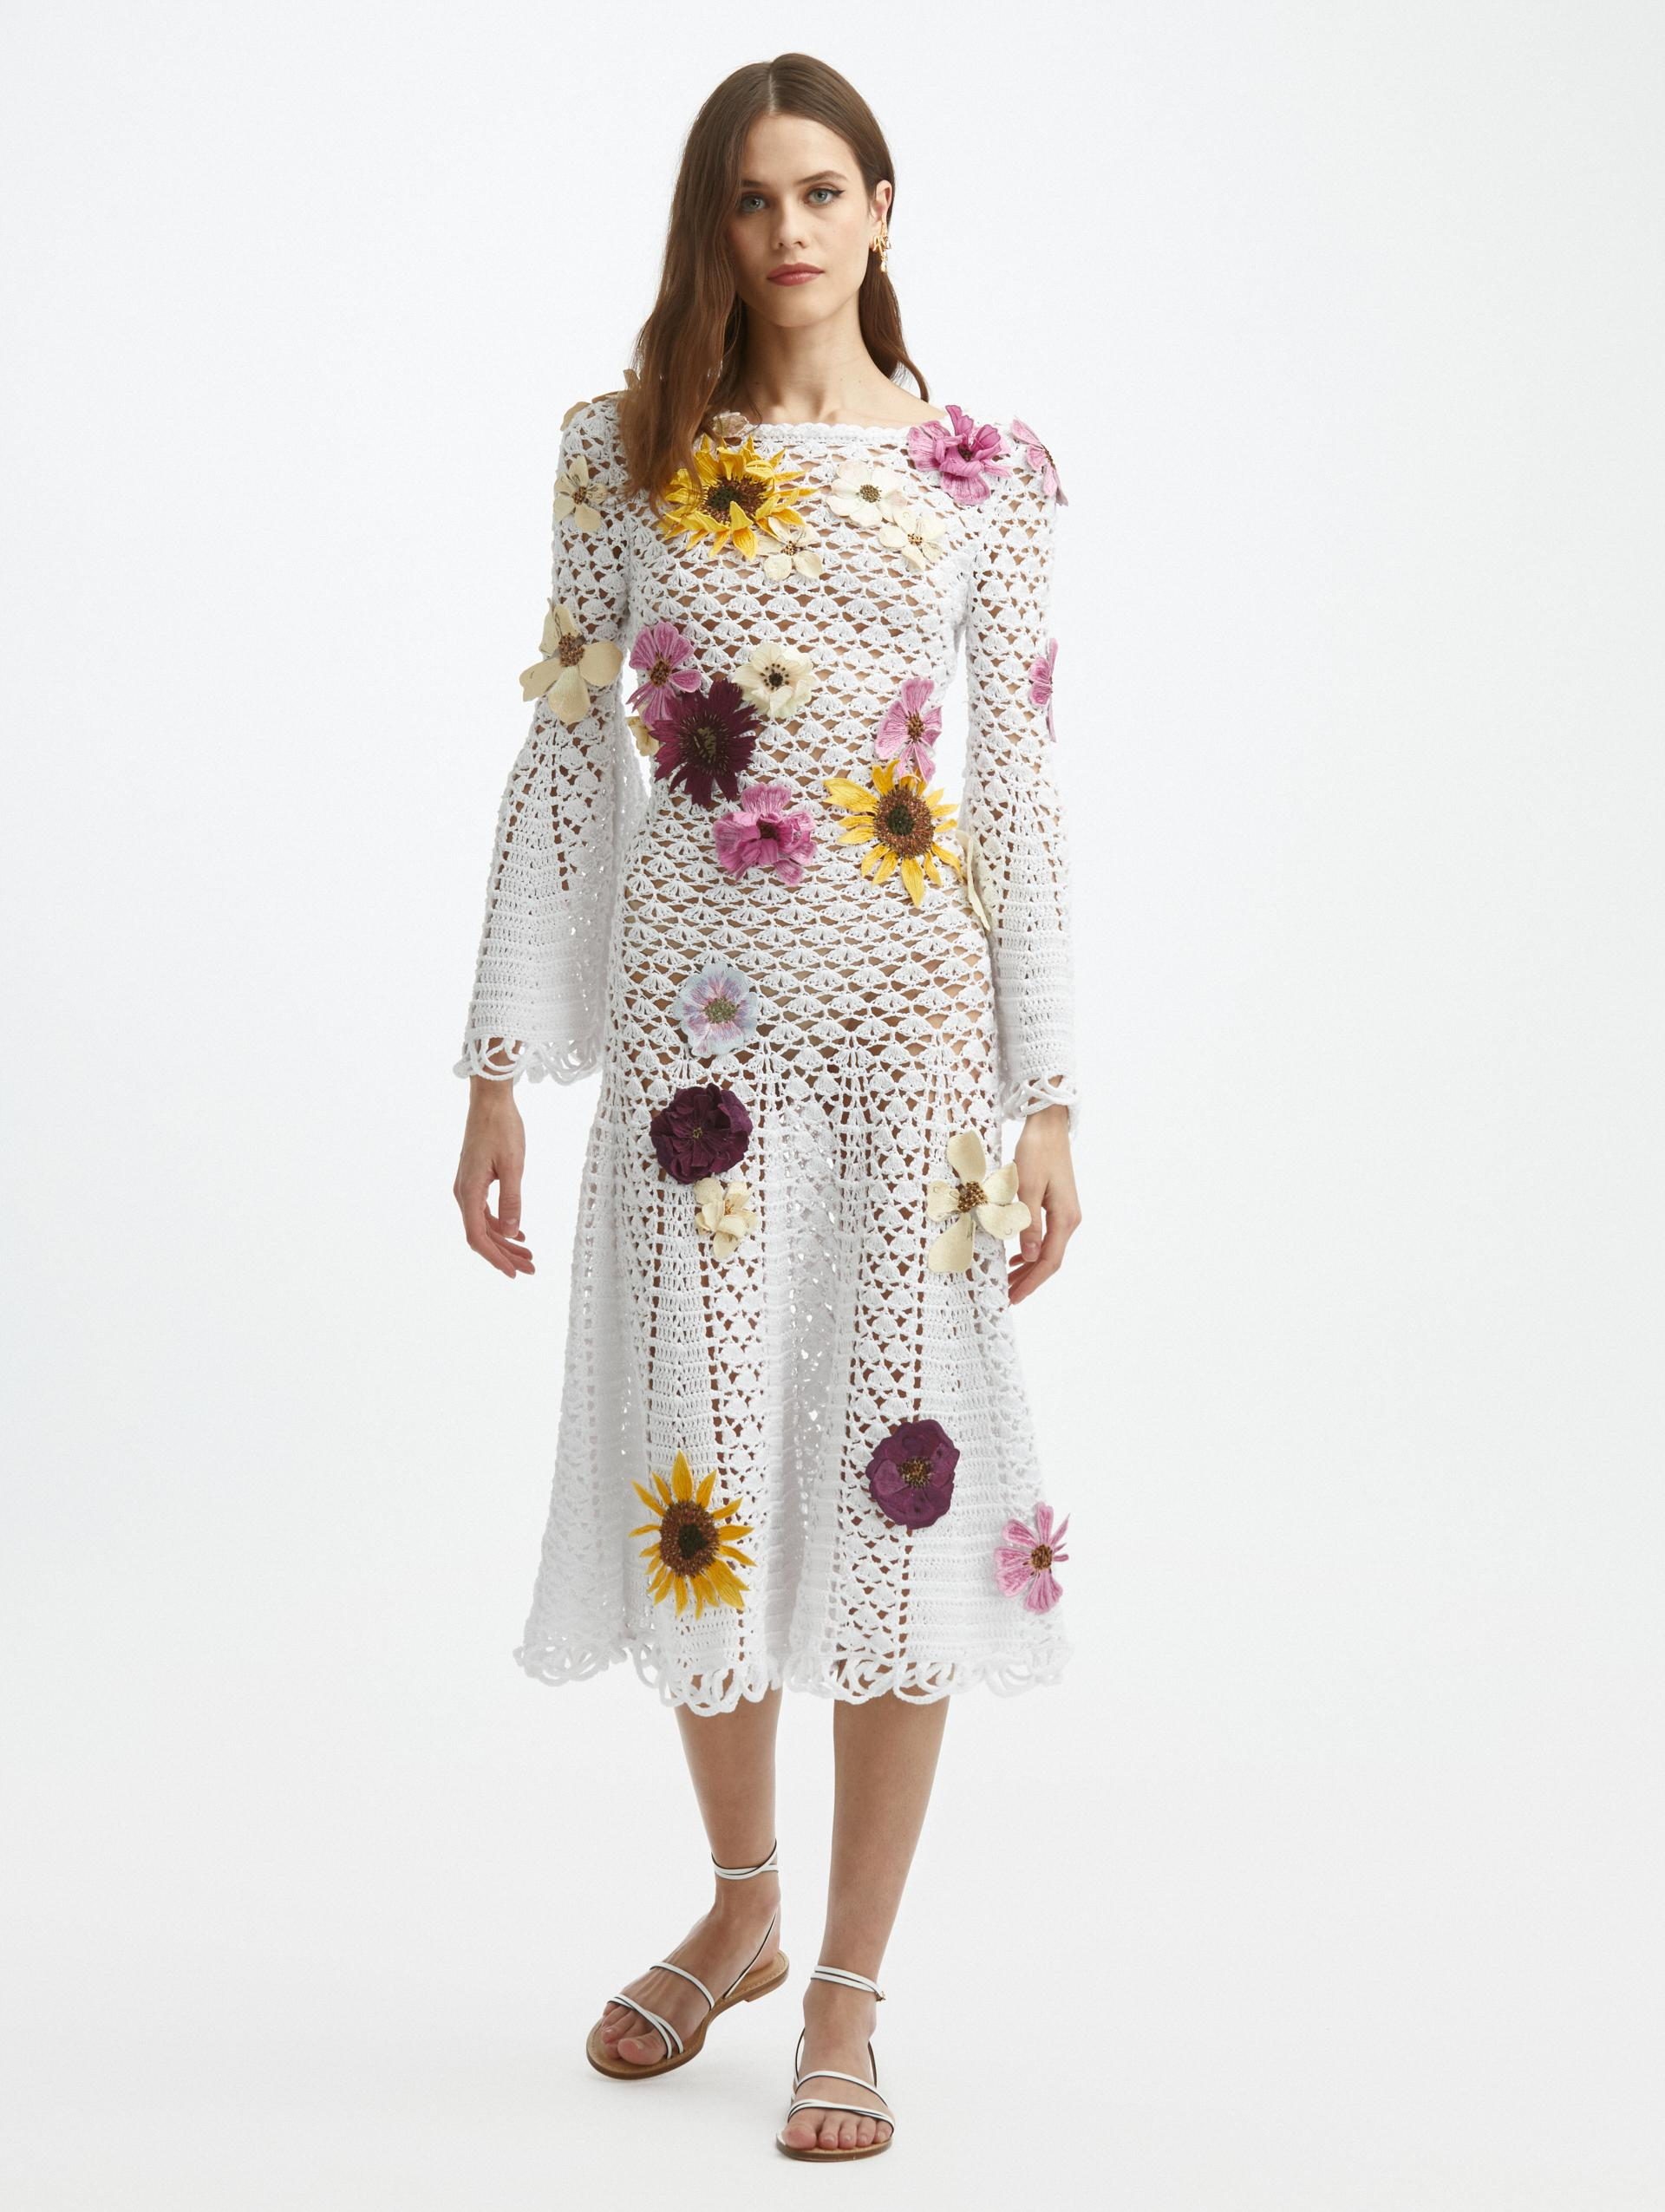 FLORAL EMBROIDERED CROCHET KNIT DRESS